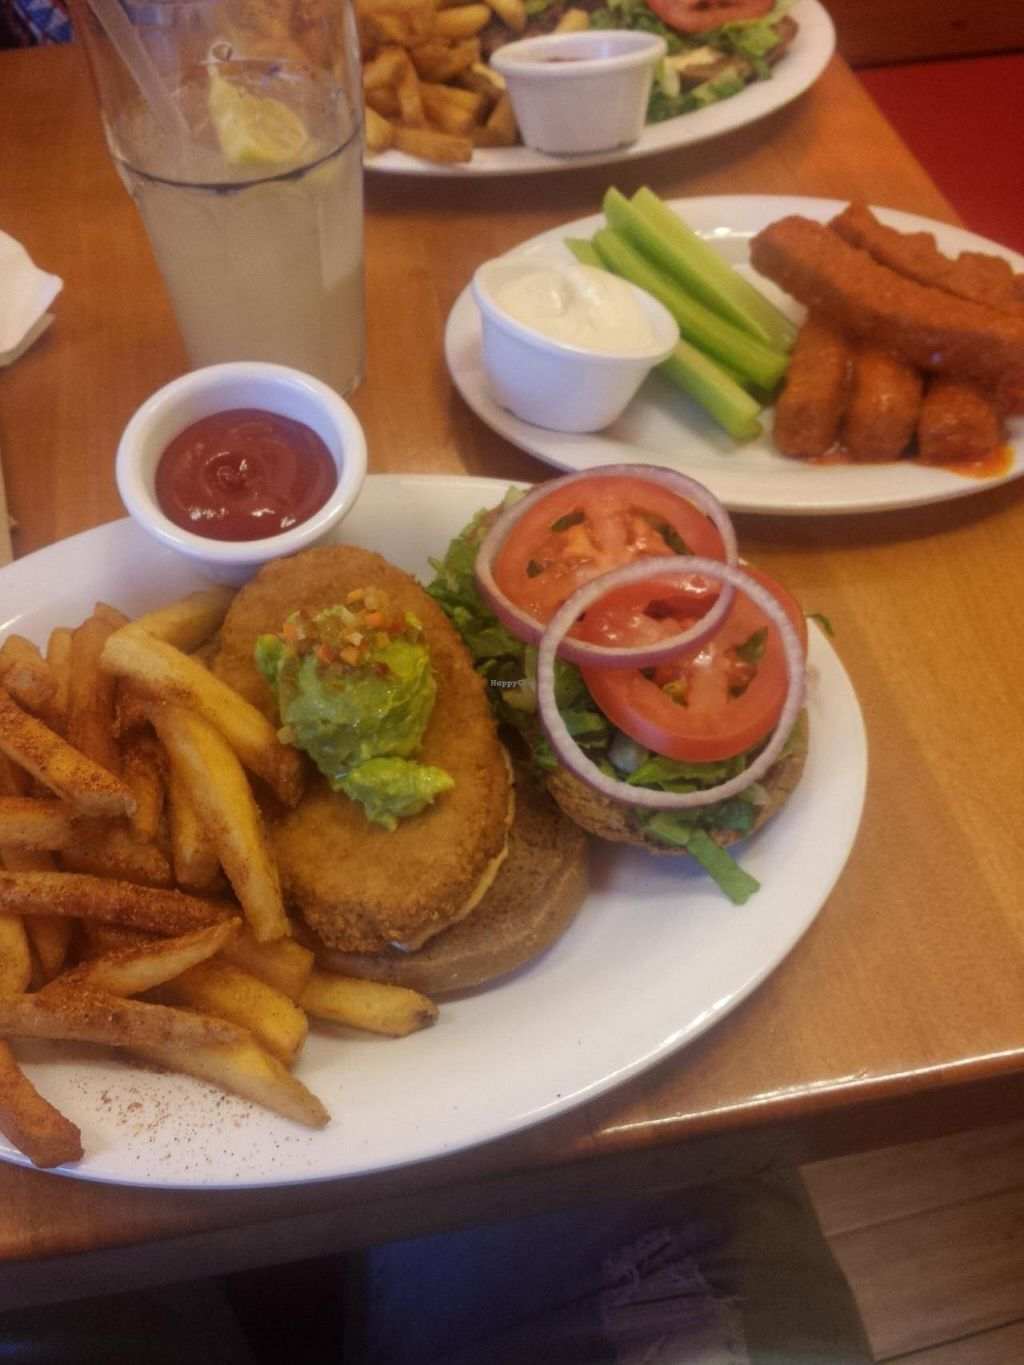 """Photo of Veggie Grill  by <a href=""""/members/profile/nstrawbr"""">nstrawbr</a> <br/>Santa Fe Crispy Chicken with Buffalo Wings <br/> June 6, 2014  - <a href='/contact/abuse/image/18882/71477'>Report</a>"""